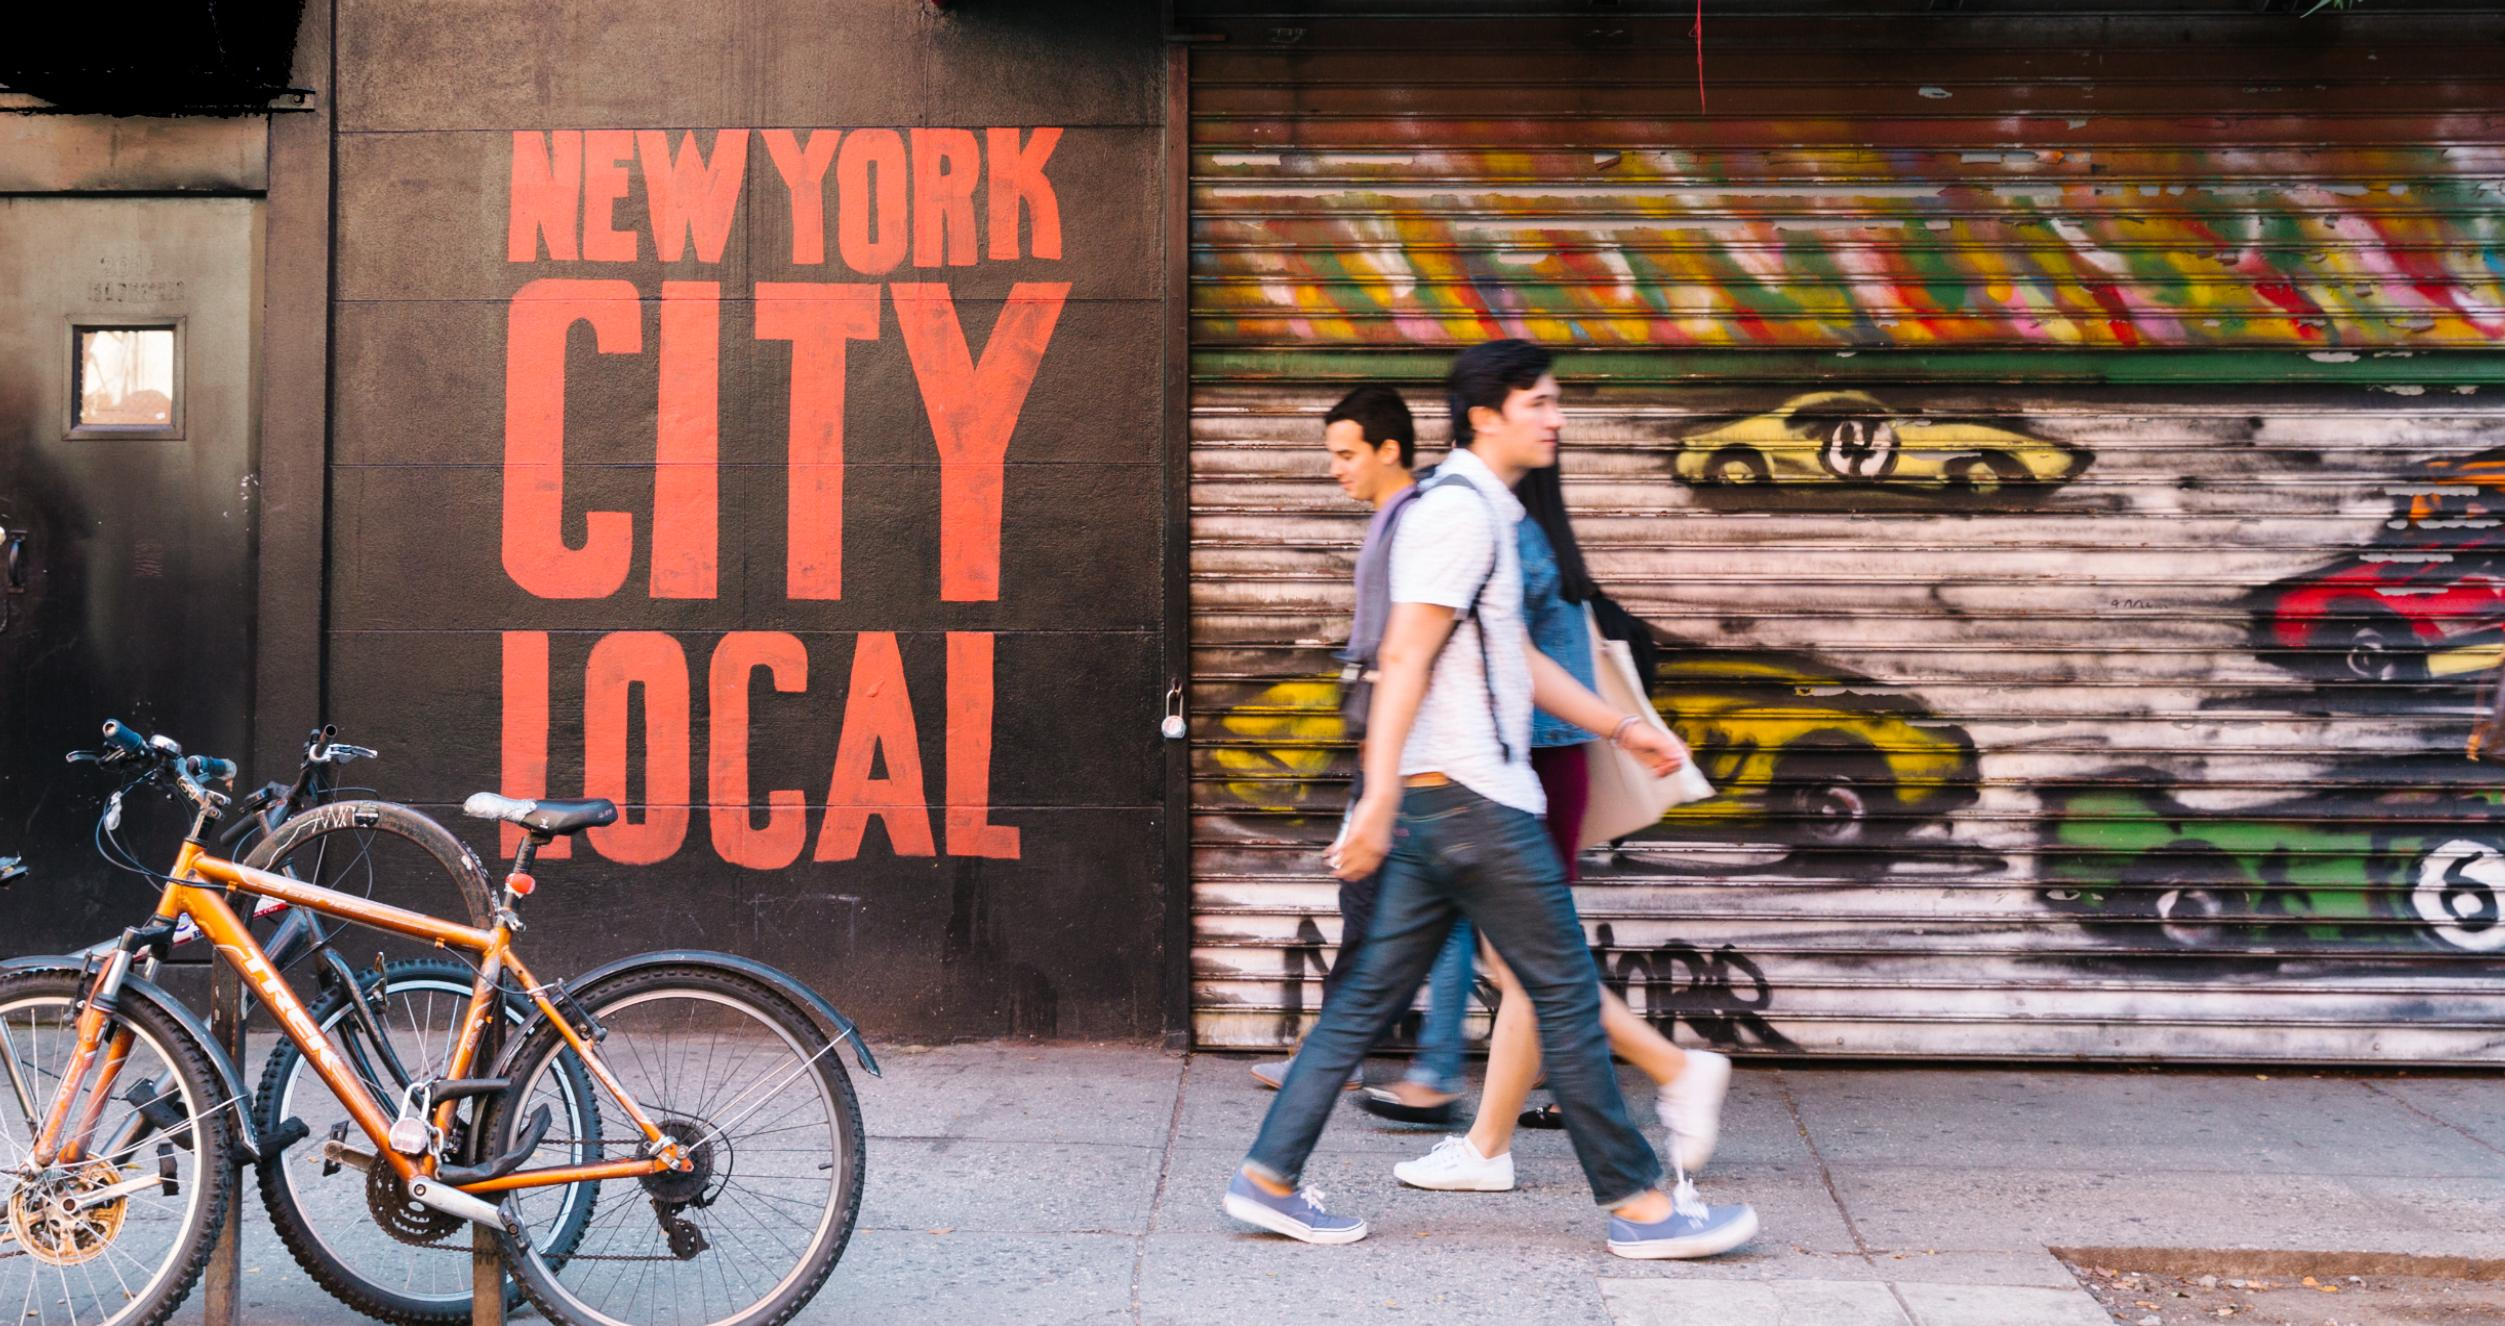 With cultural and professional opportunities and a campus in the heart of the city, you'll be a New Yorker in no time.